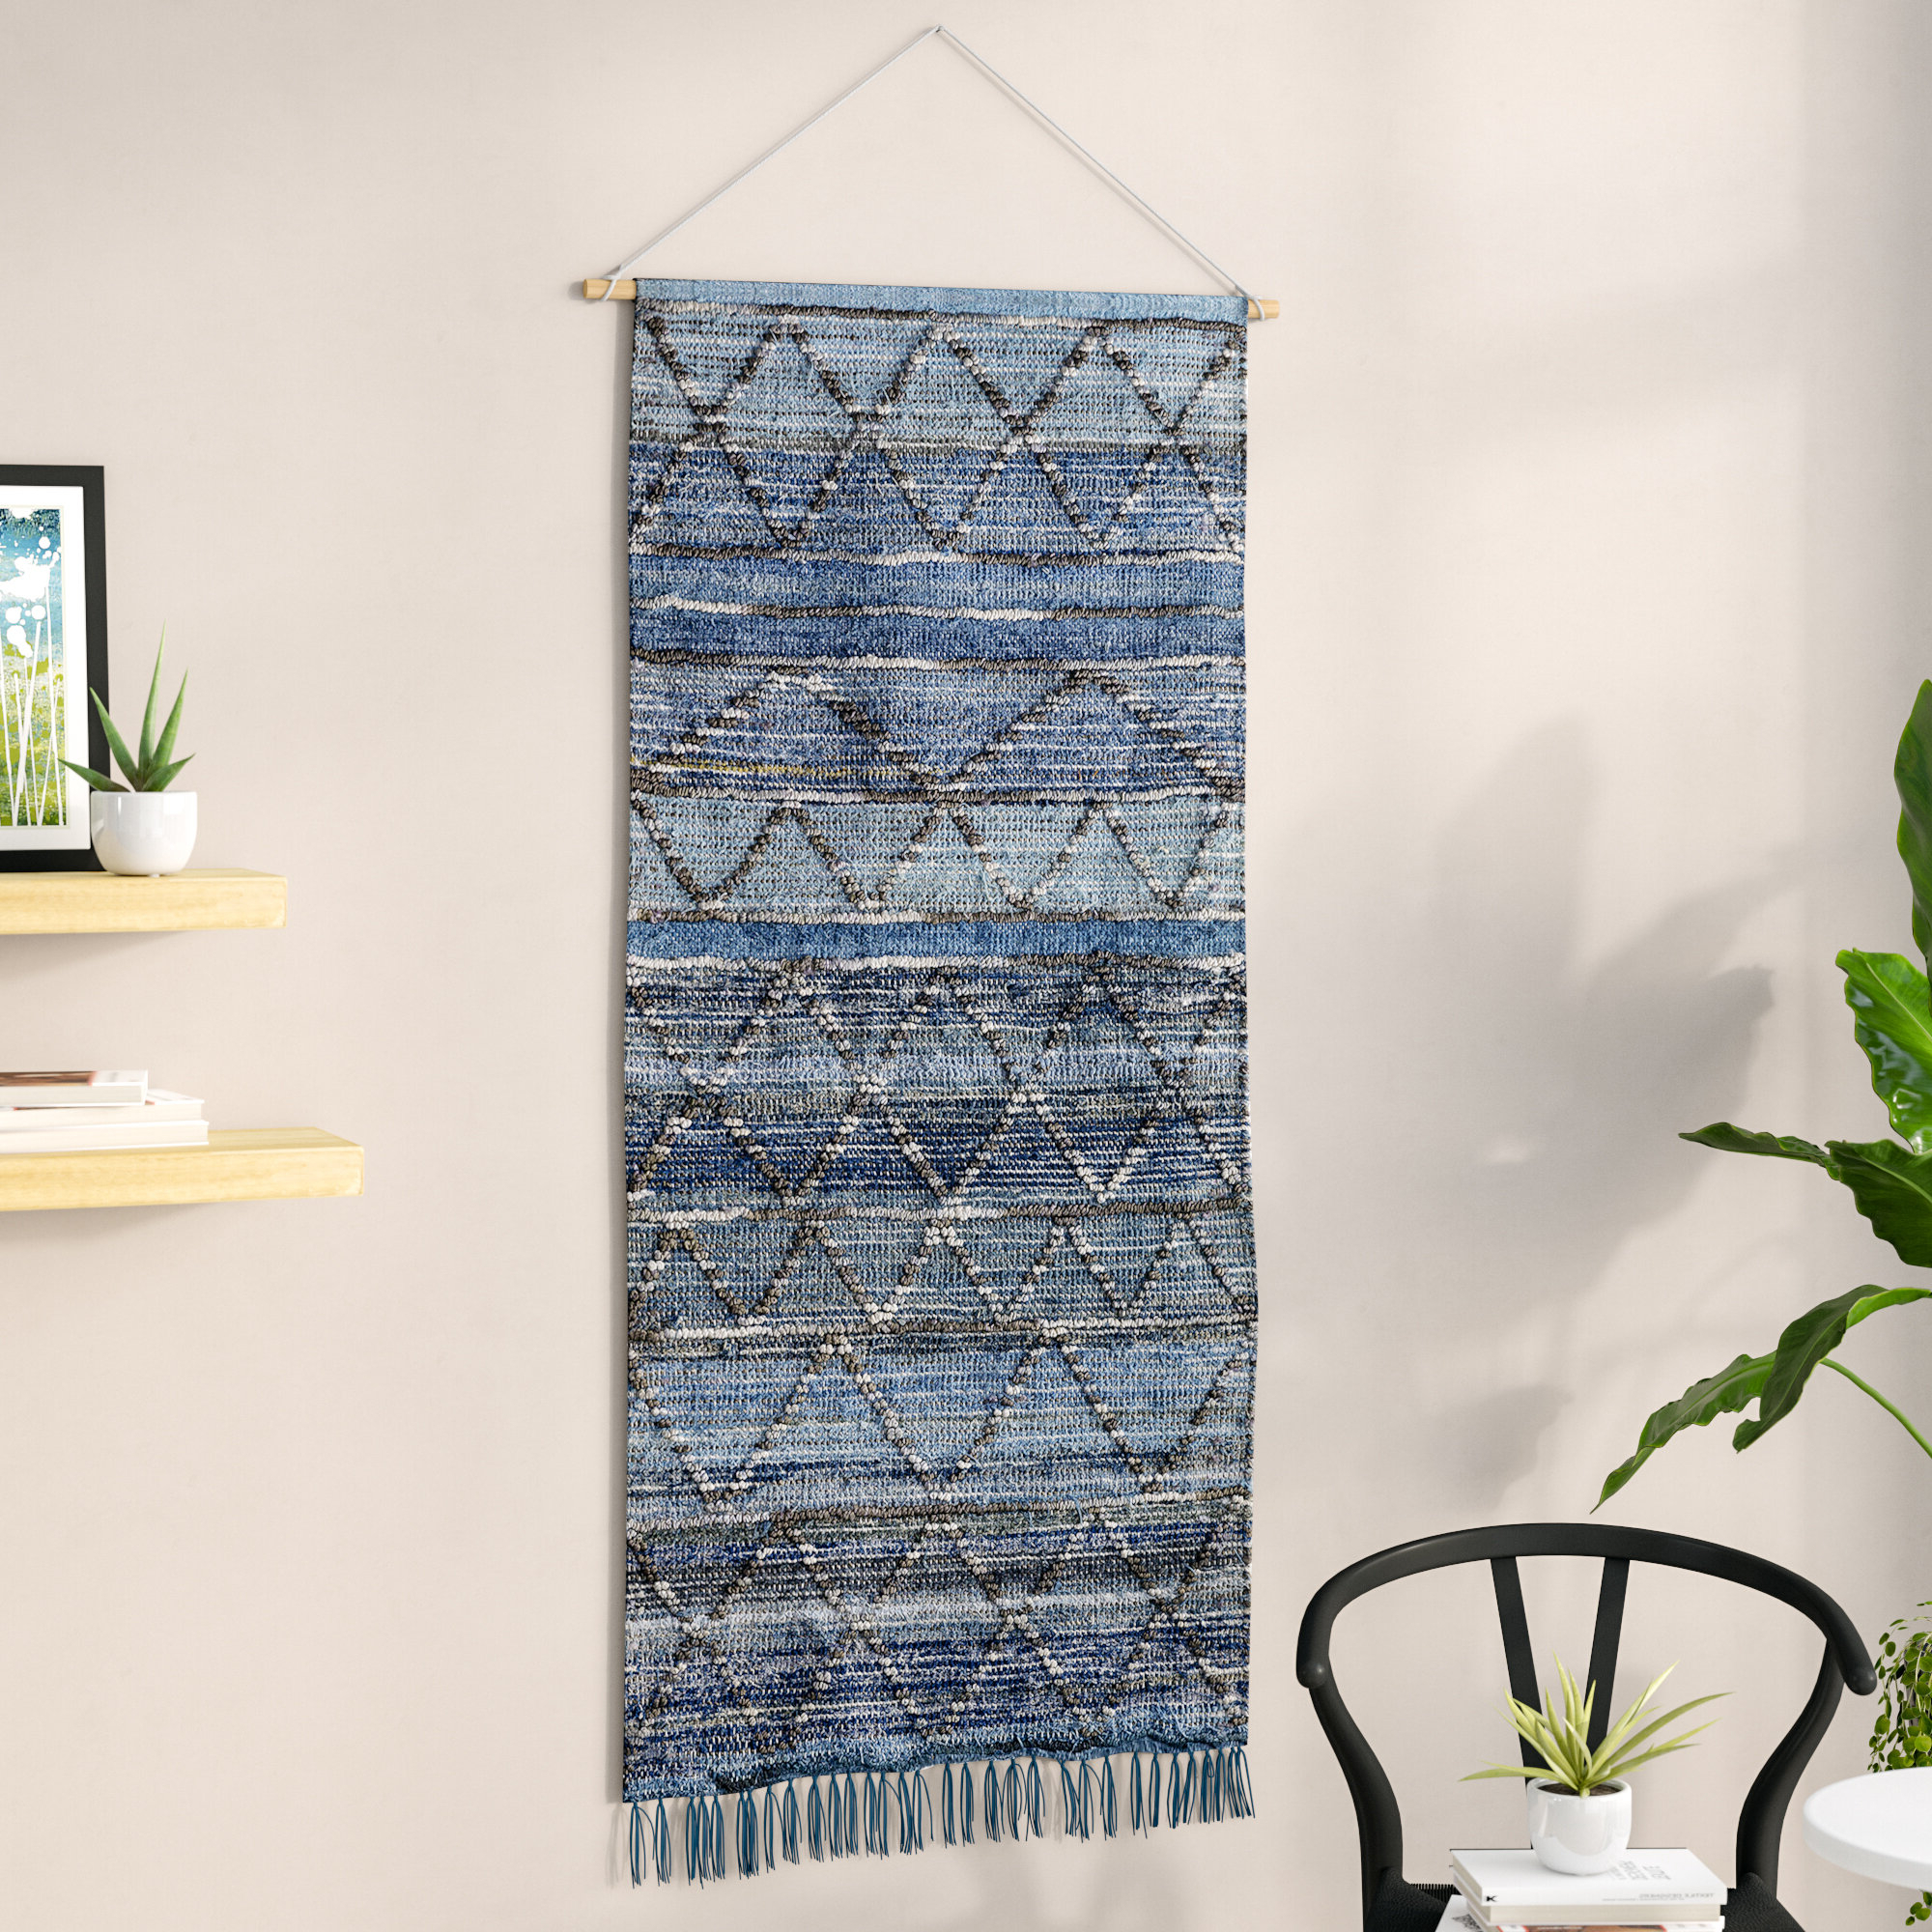 Well Liked Blended Fabric Wall Hanging With Hanging Accessories Included In Blended Fabric Saber Wall Hangings With Rod (View 5 of 20)